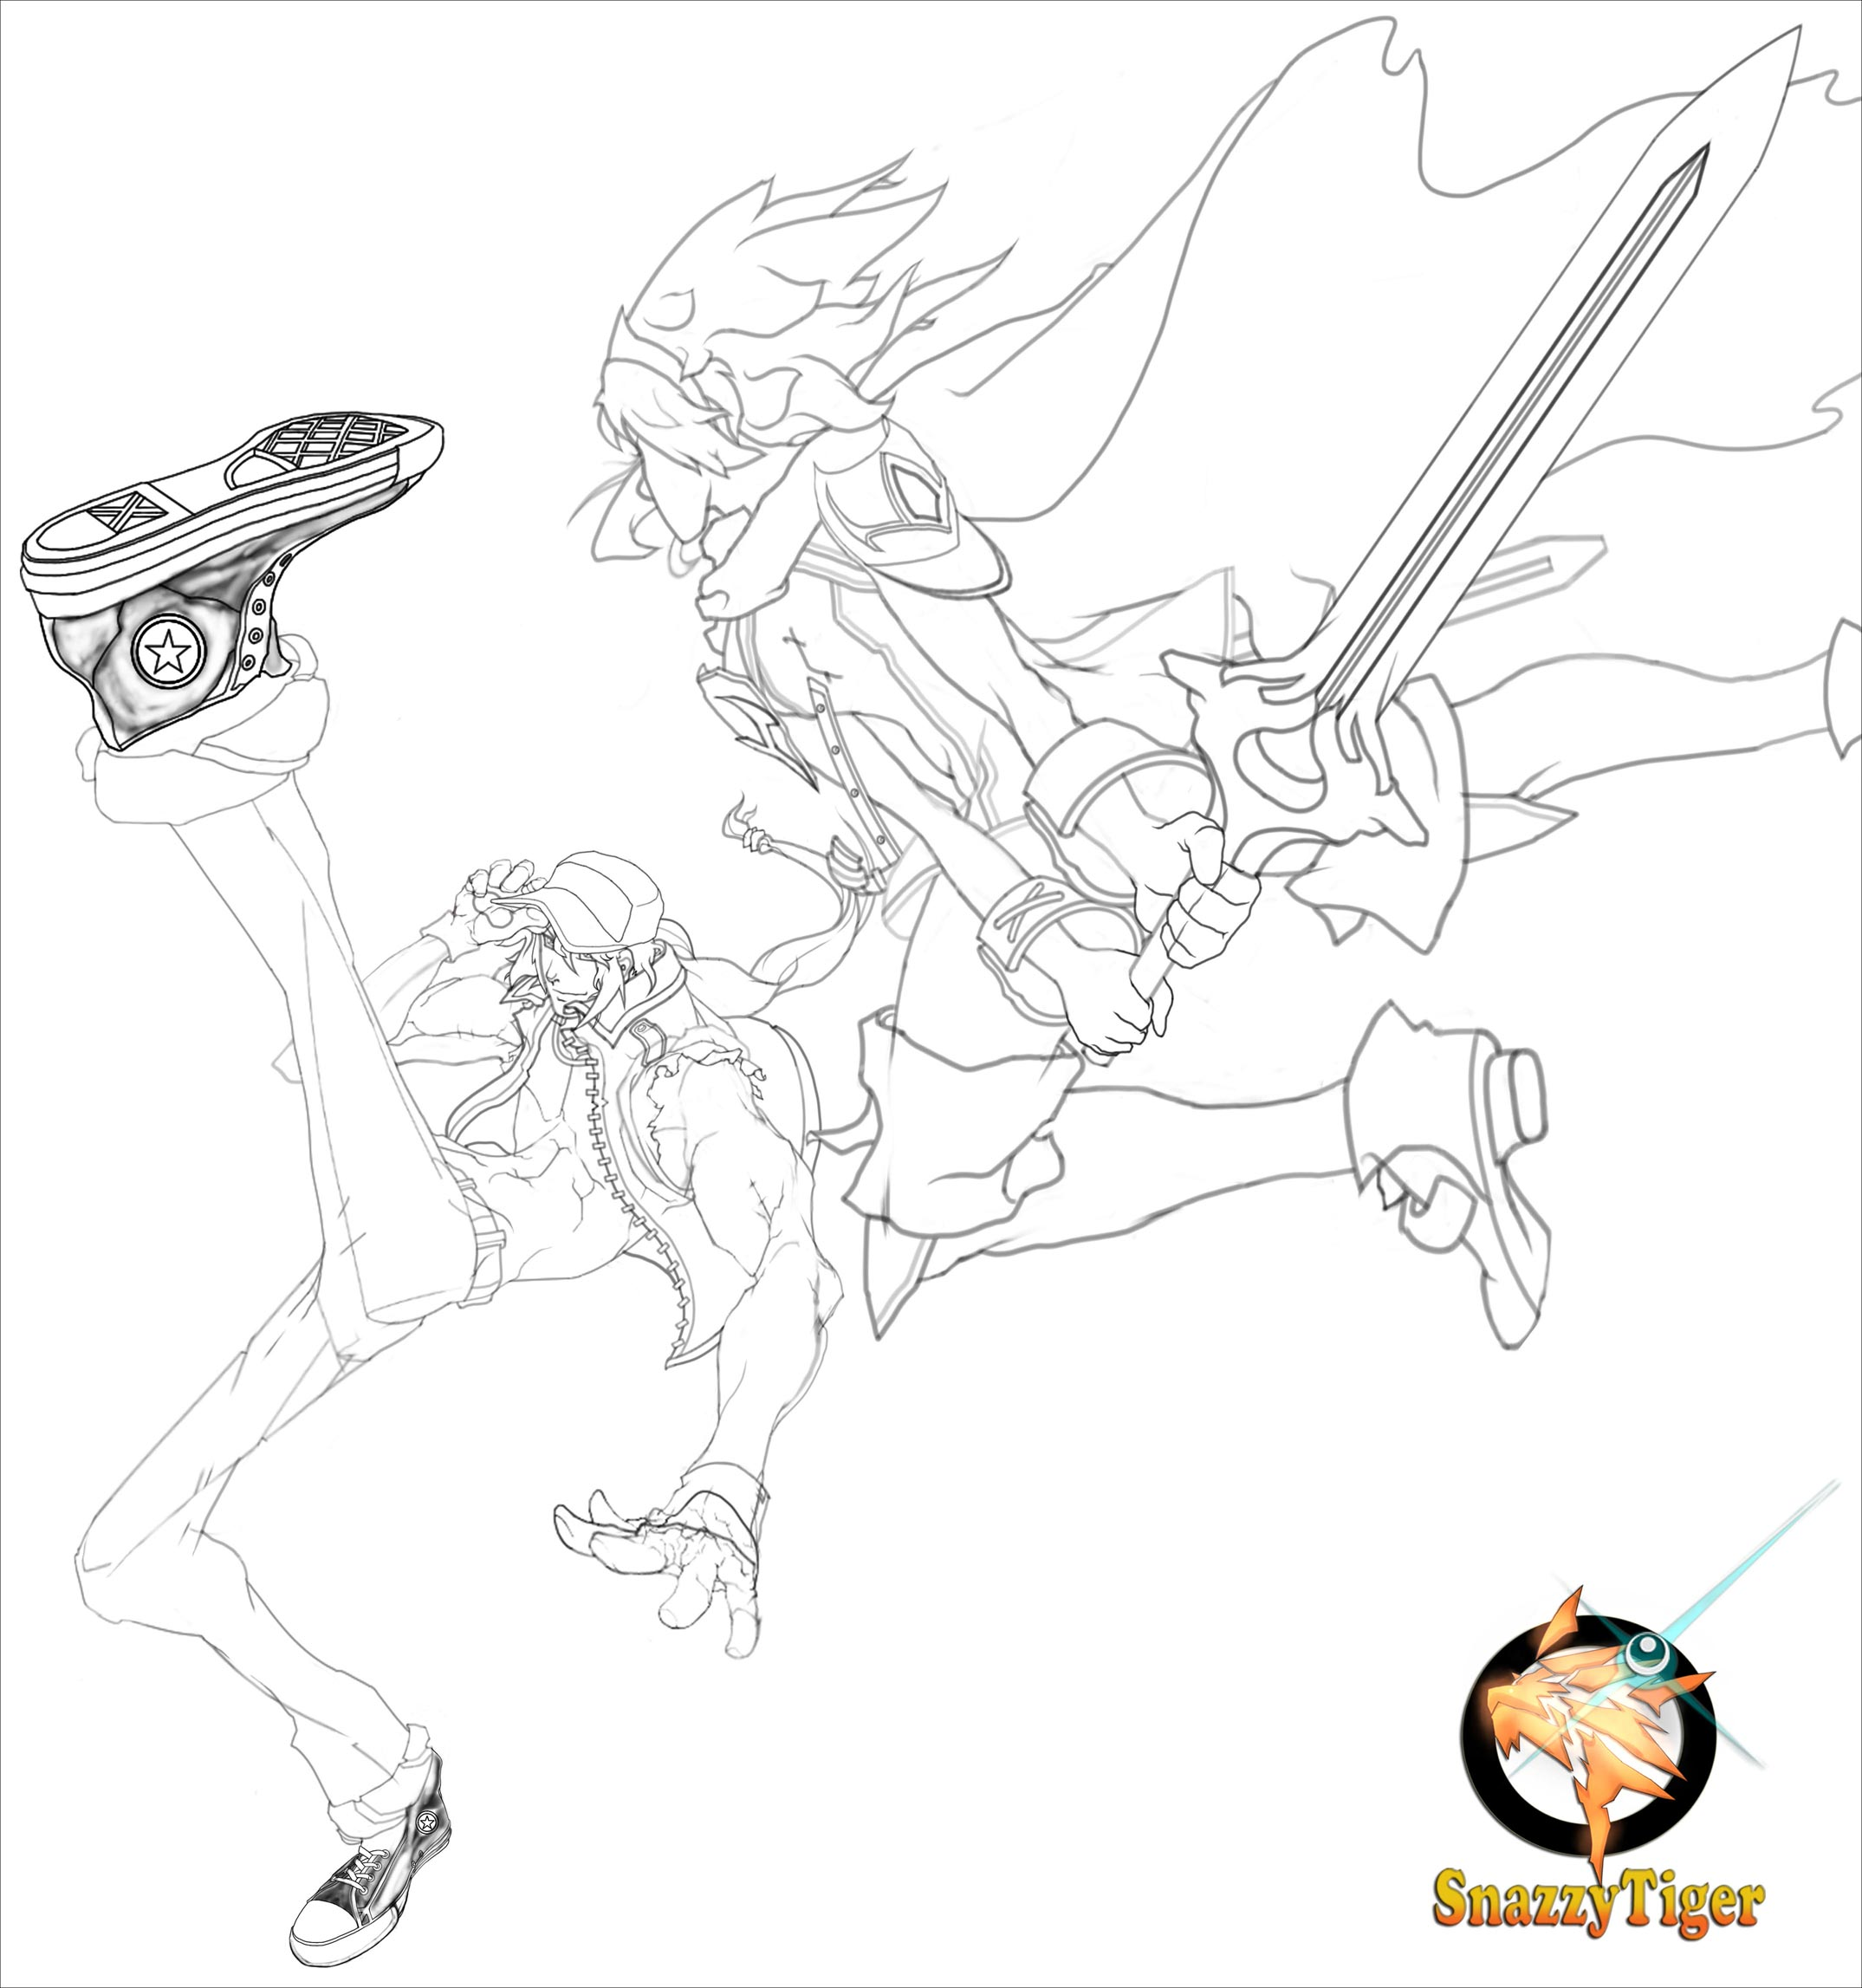 Lamar Price's fighting game sketches 4 out of 7 image gallery